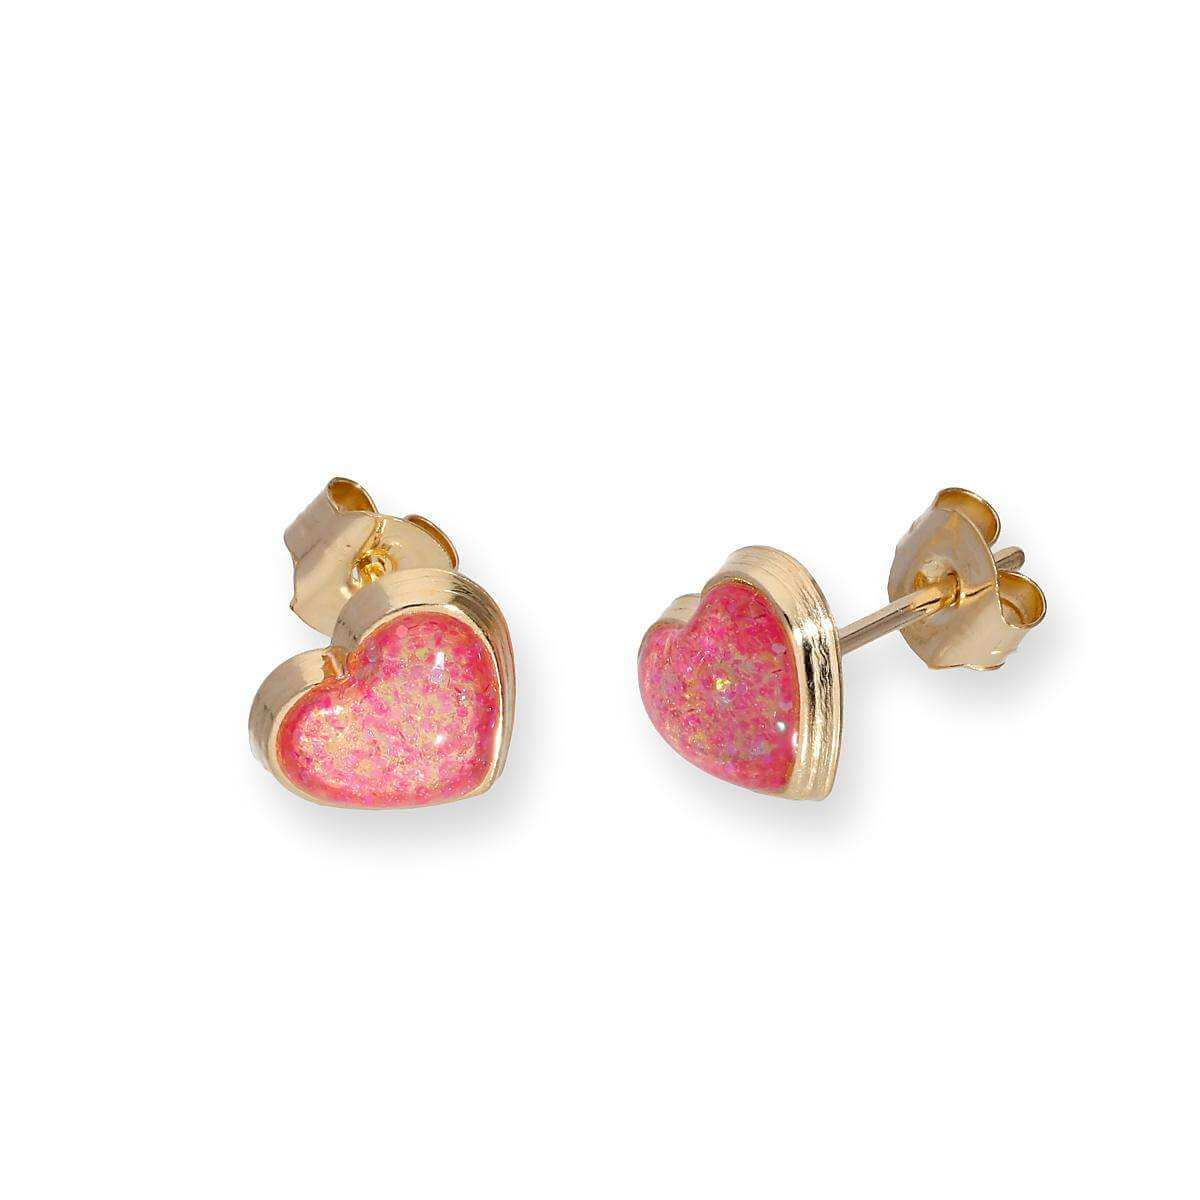 9ct Gold & Pink Glitter Enamel Heart Stud Earrings